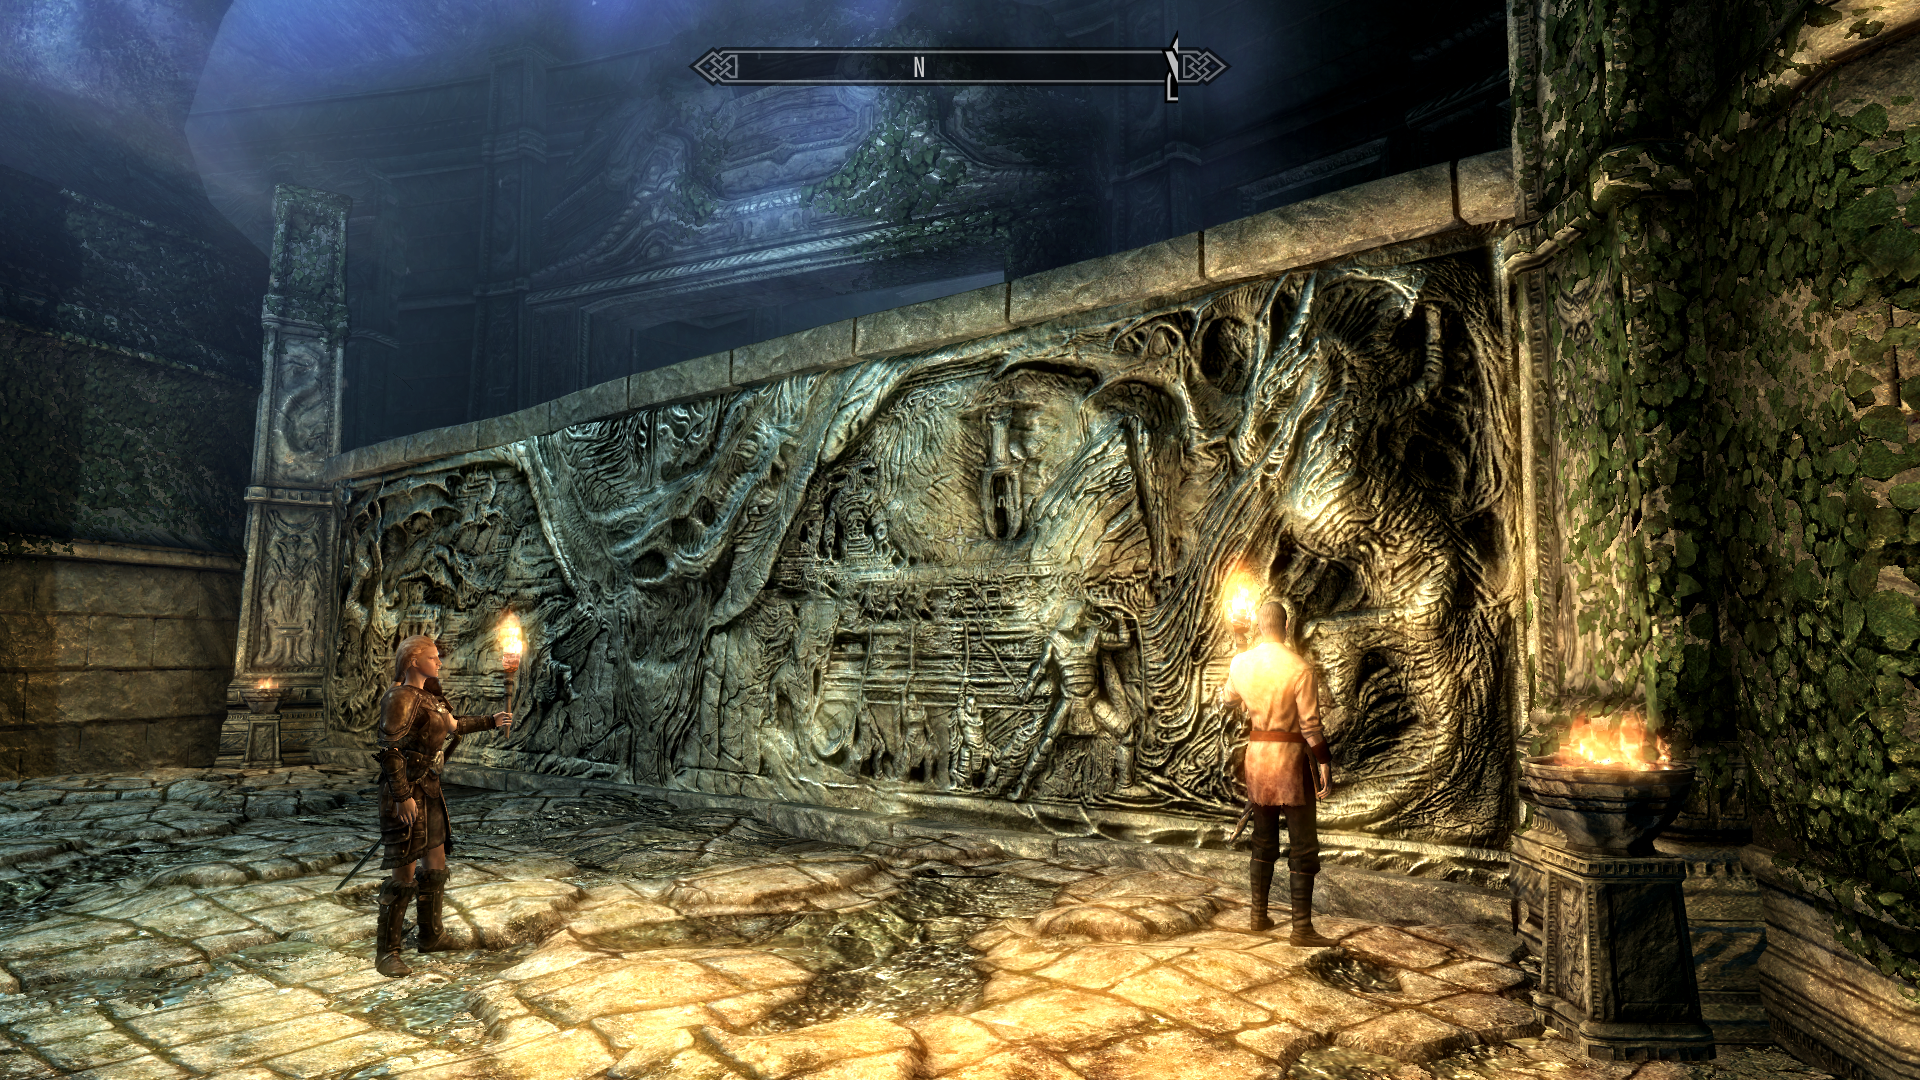 The Elder Scrolls V: Skyrim Windows Delphine and Esbern in front of Alduin's Wall in Sky Haven Temple.